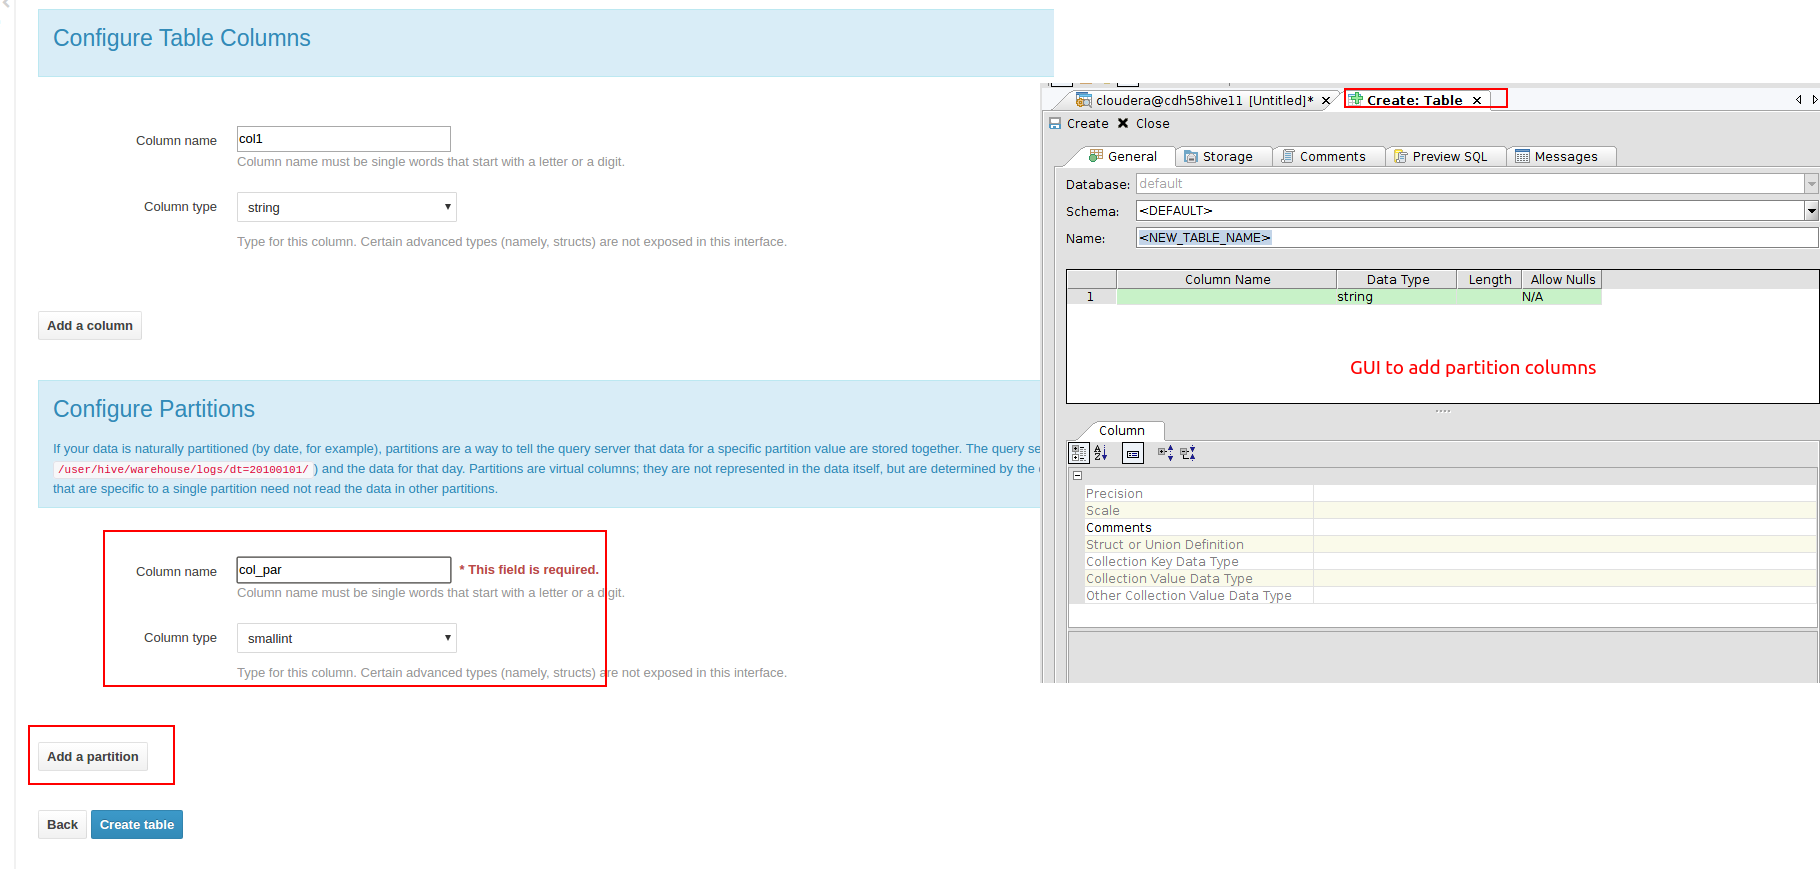 13790: Hive - Add support for partitions in create, alter